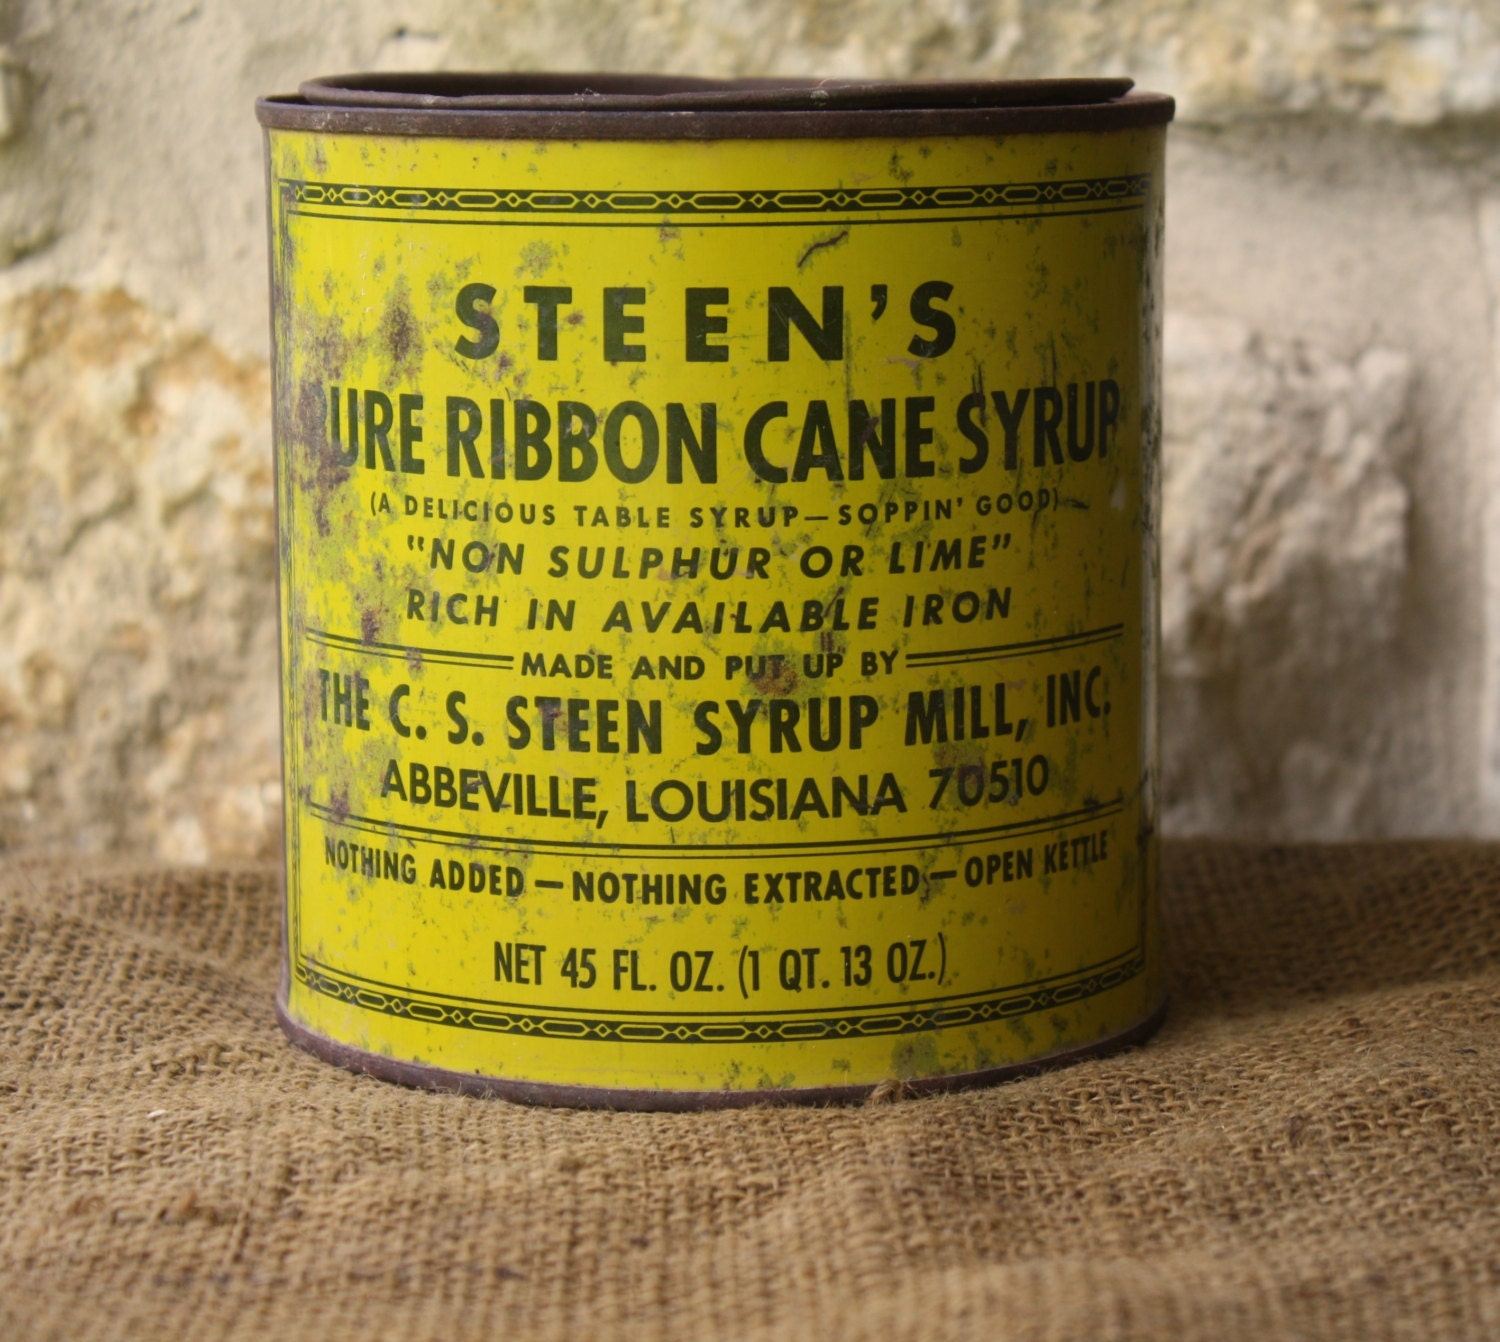 Vintage Steen's Pure Ribbon Cane Syrup Tin Country